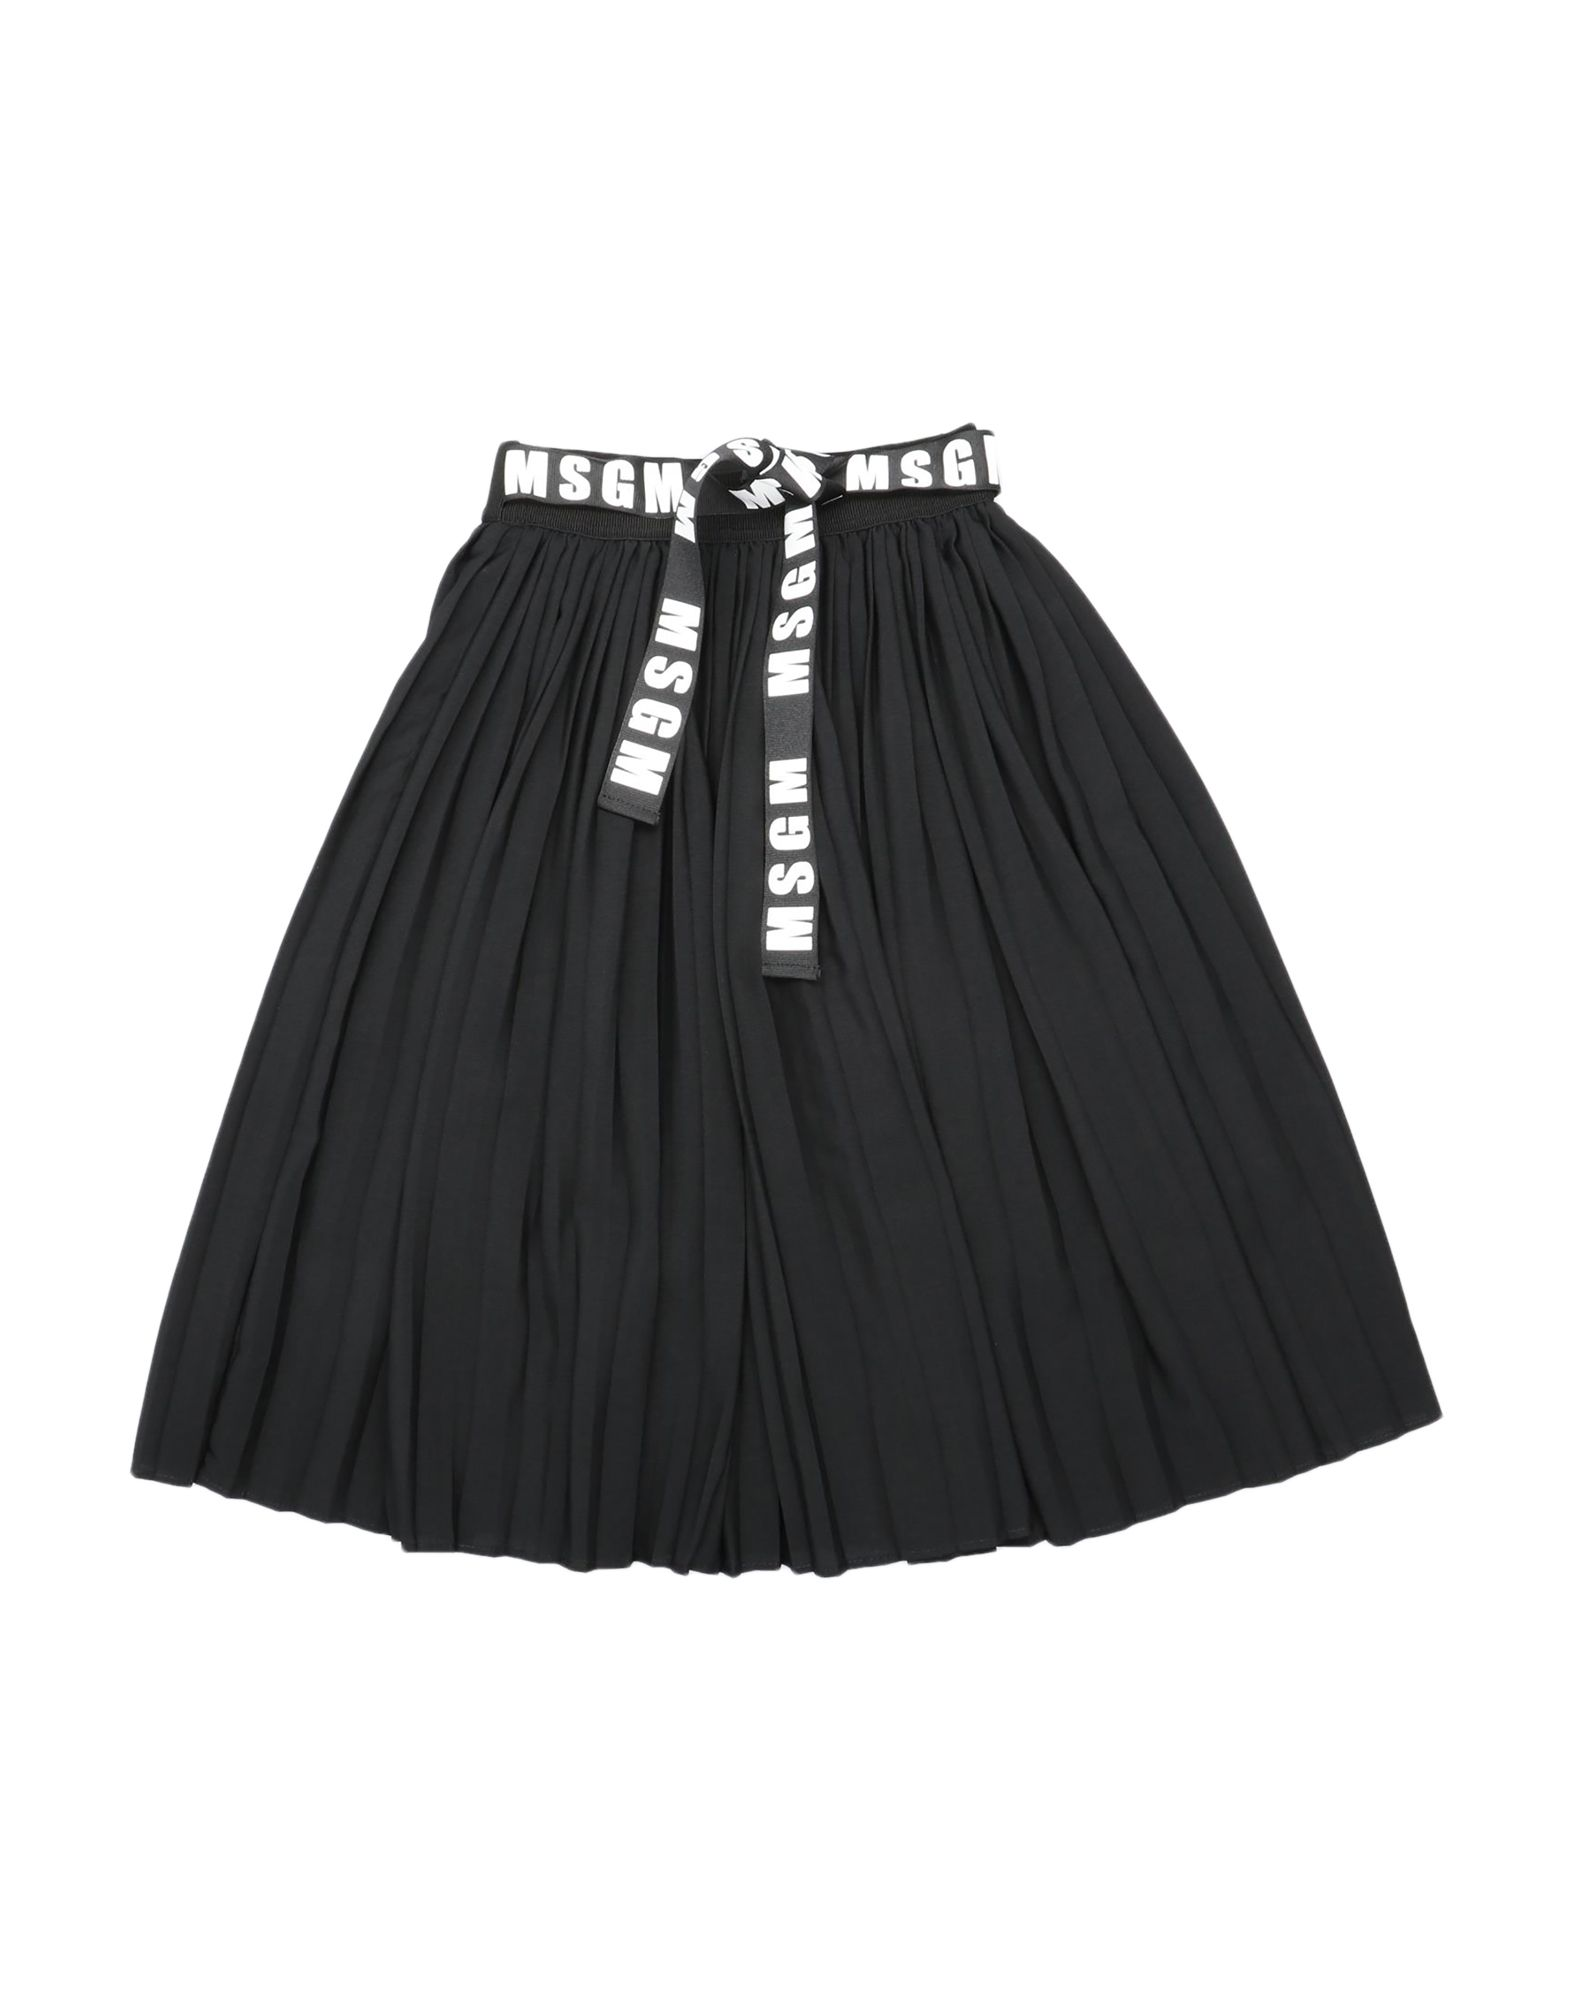 MSGM Skirts. do not wash, dry cleanable, iron at 110degree c max, do not bleach, do not tumble dry, grosgrain, crepe, pleated, sash, logo, solid color, elasticized waist, no pockets, unlined. 100% Polyester